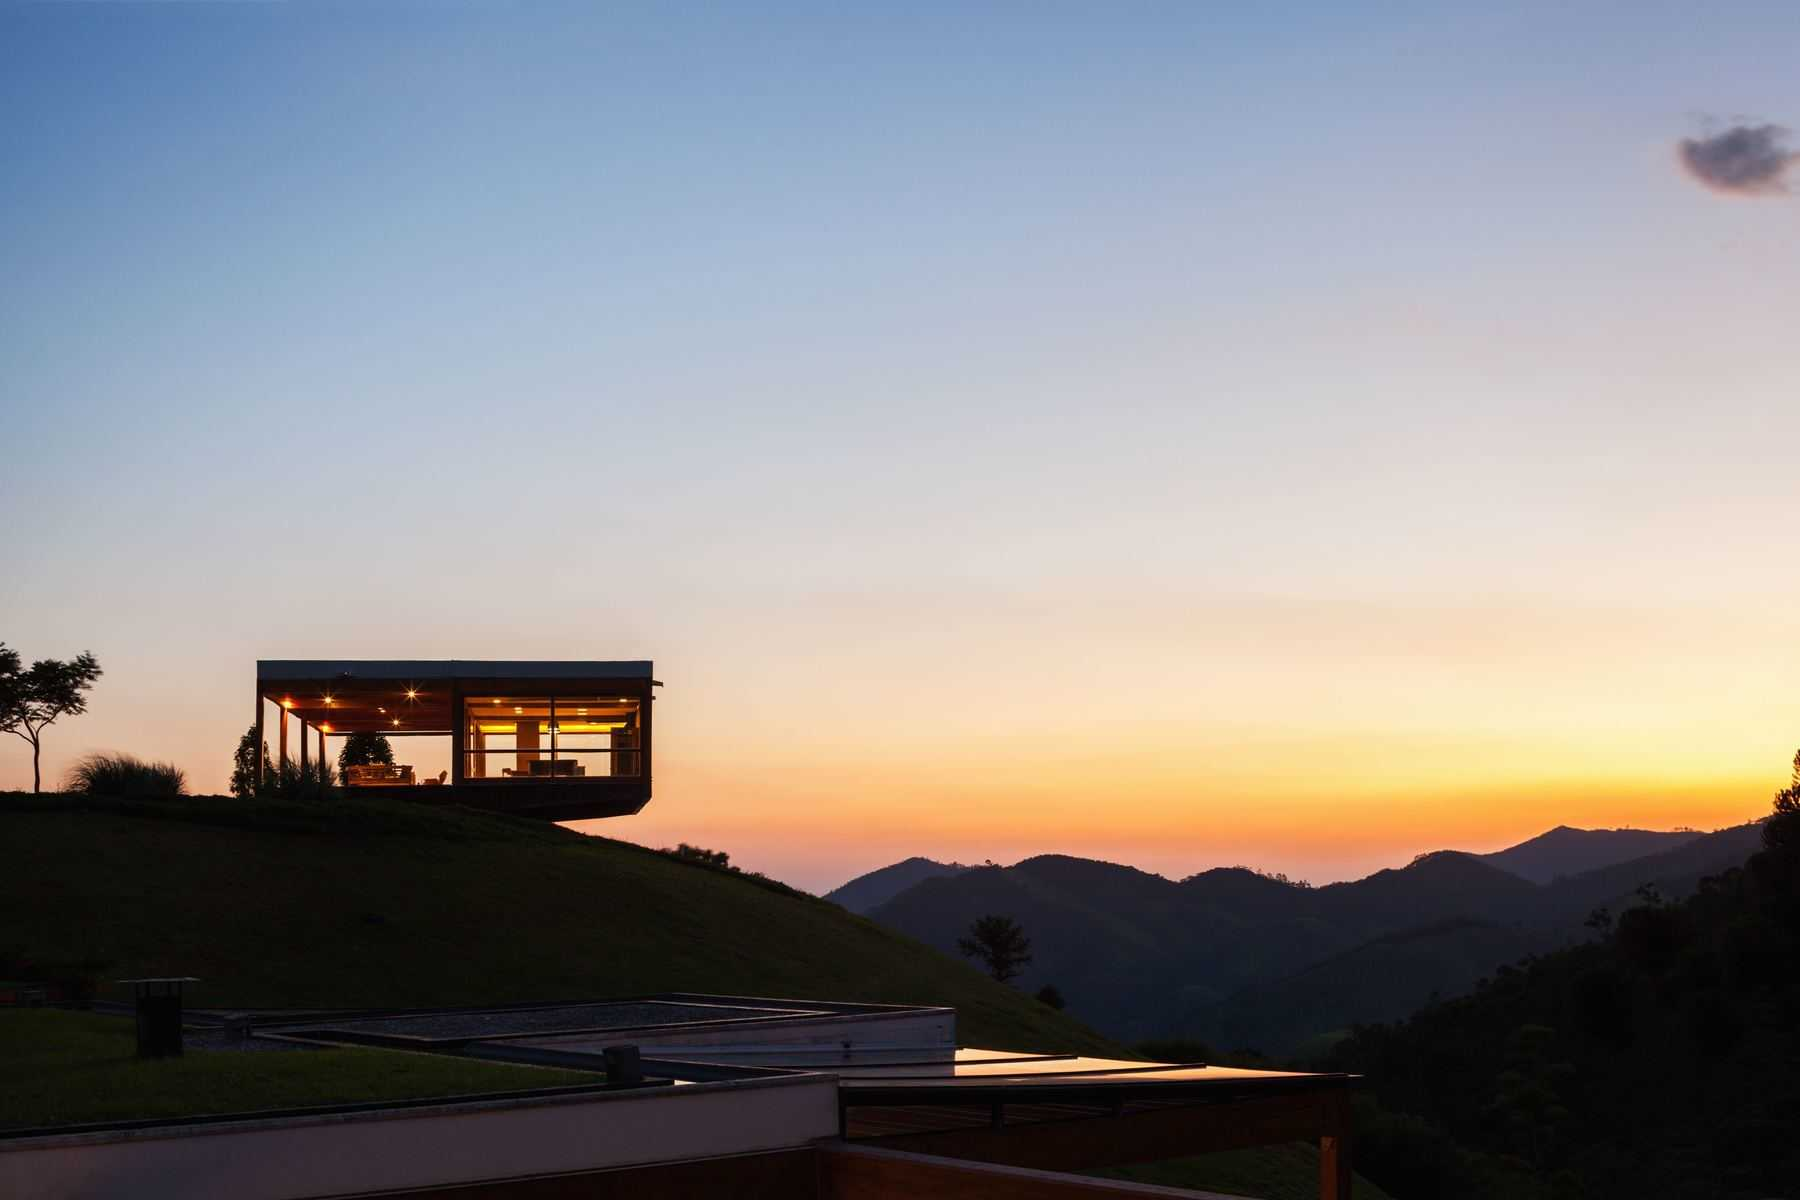 The $11.5 Million Grid House Makes You Want To Move In Brazil